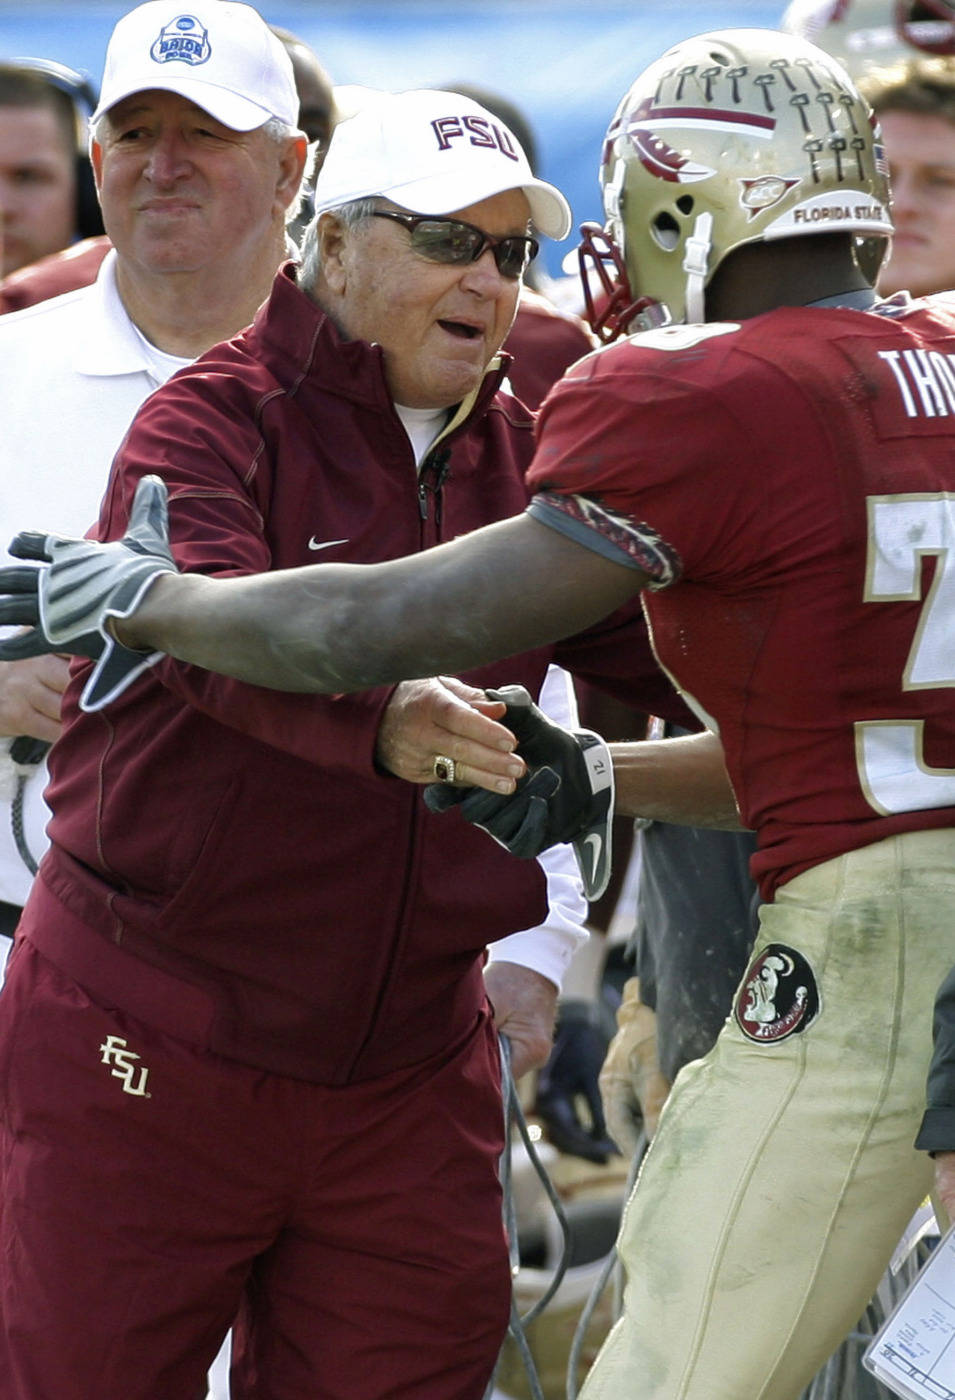 Florida State head coach Bobby Bowden, left, shakes hands with running back Jermaine Thomas during the third quarter of the Gator Bowl NCAA college football game against West Virginia after Thomas scored a touchdown, Friday, Jan. 1, 2010, in Jacksonville, Fla.  Florida State won 33-21, in Bowden's last game. (AP Photo/Phil Coale)